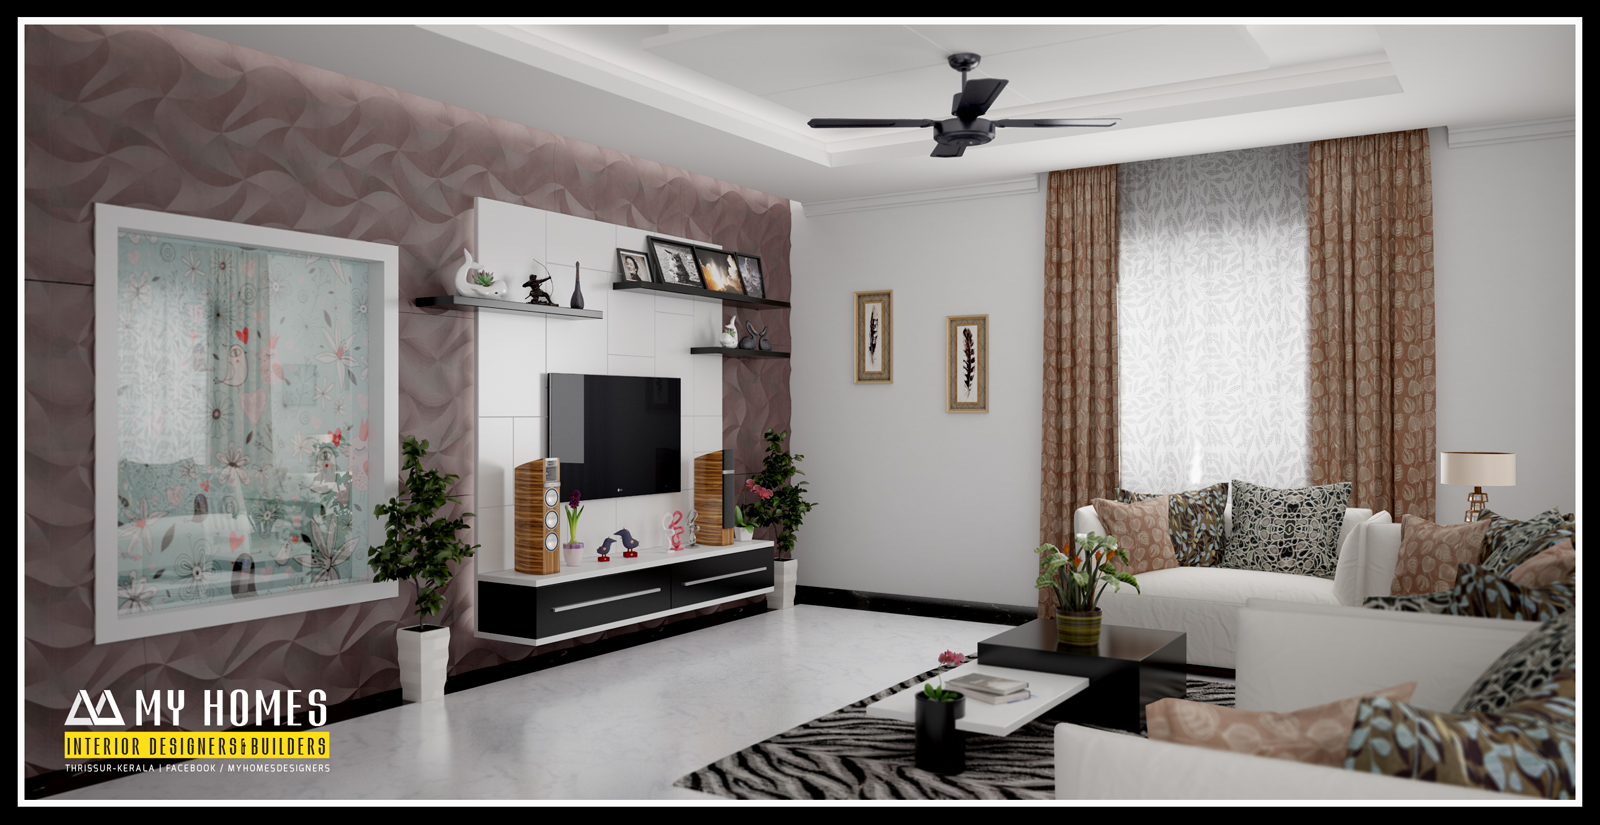 Kerala interior design ideas from designing company thrissur for Home indoor design